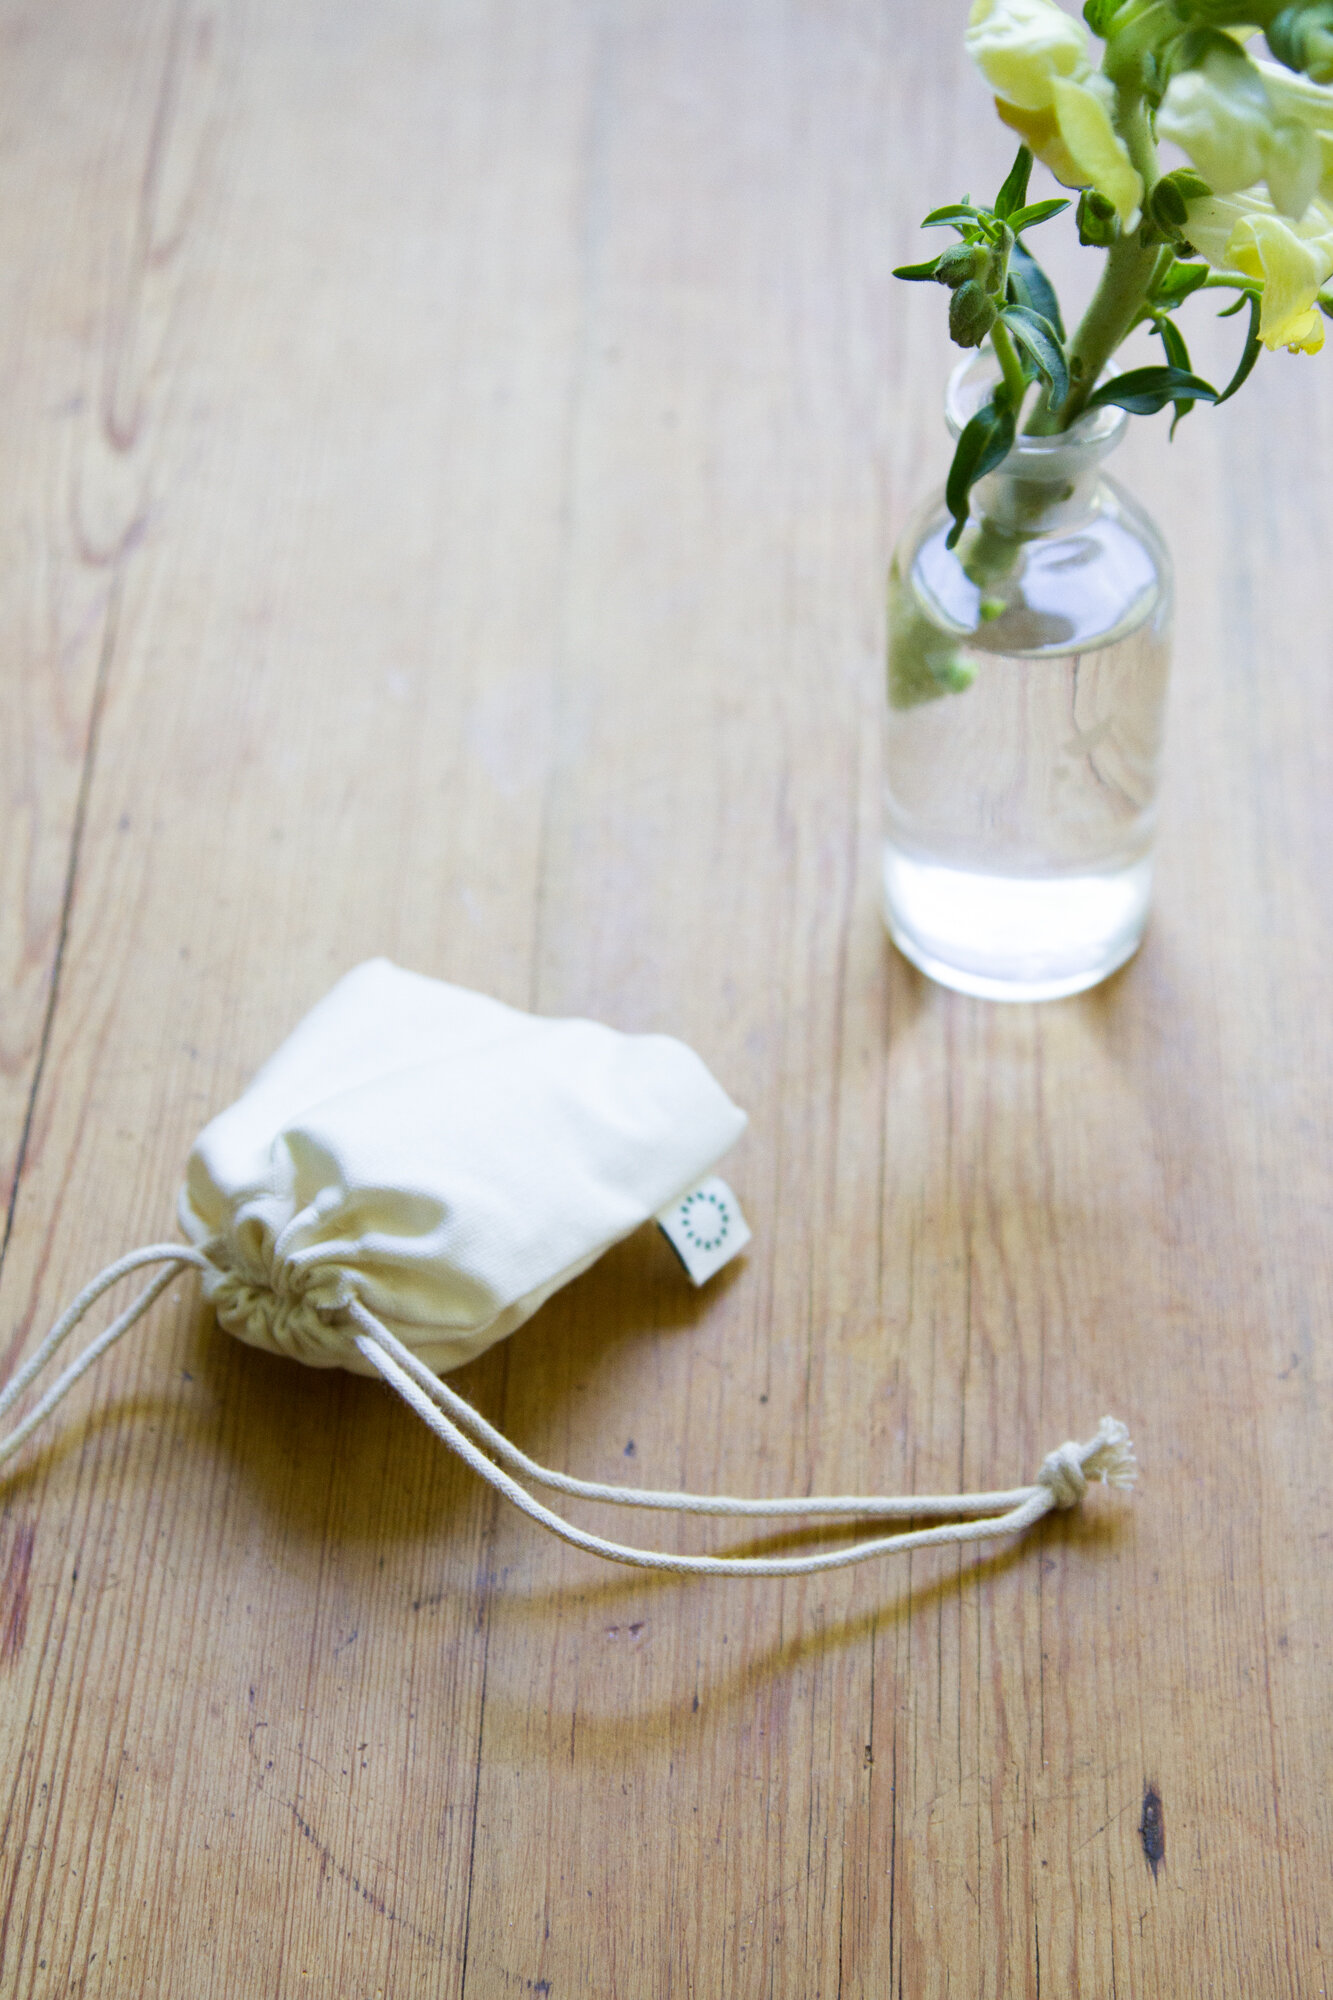 OrganiCup reusable menstrual cup | reading my tea leaves